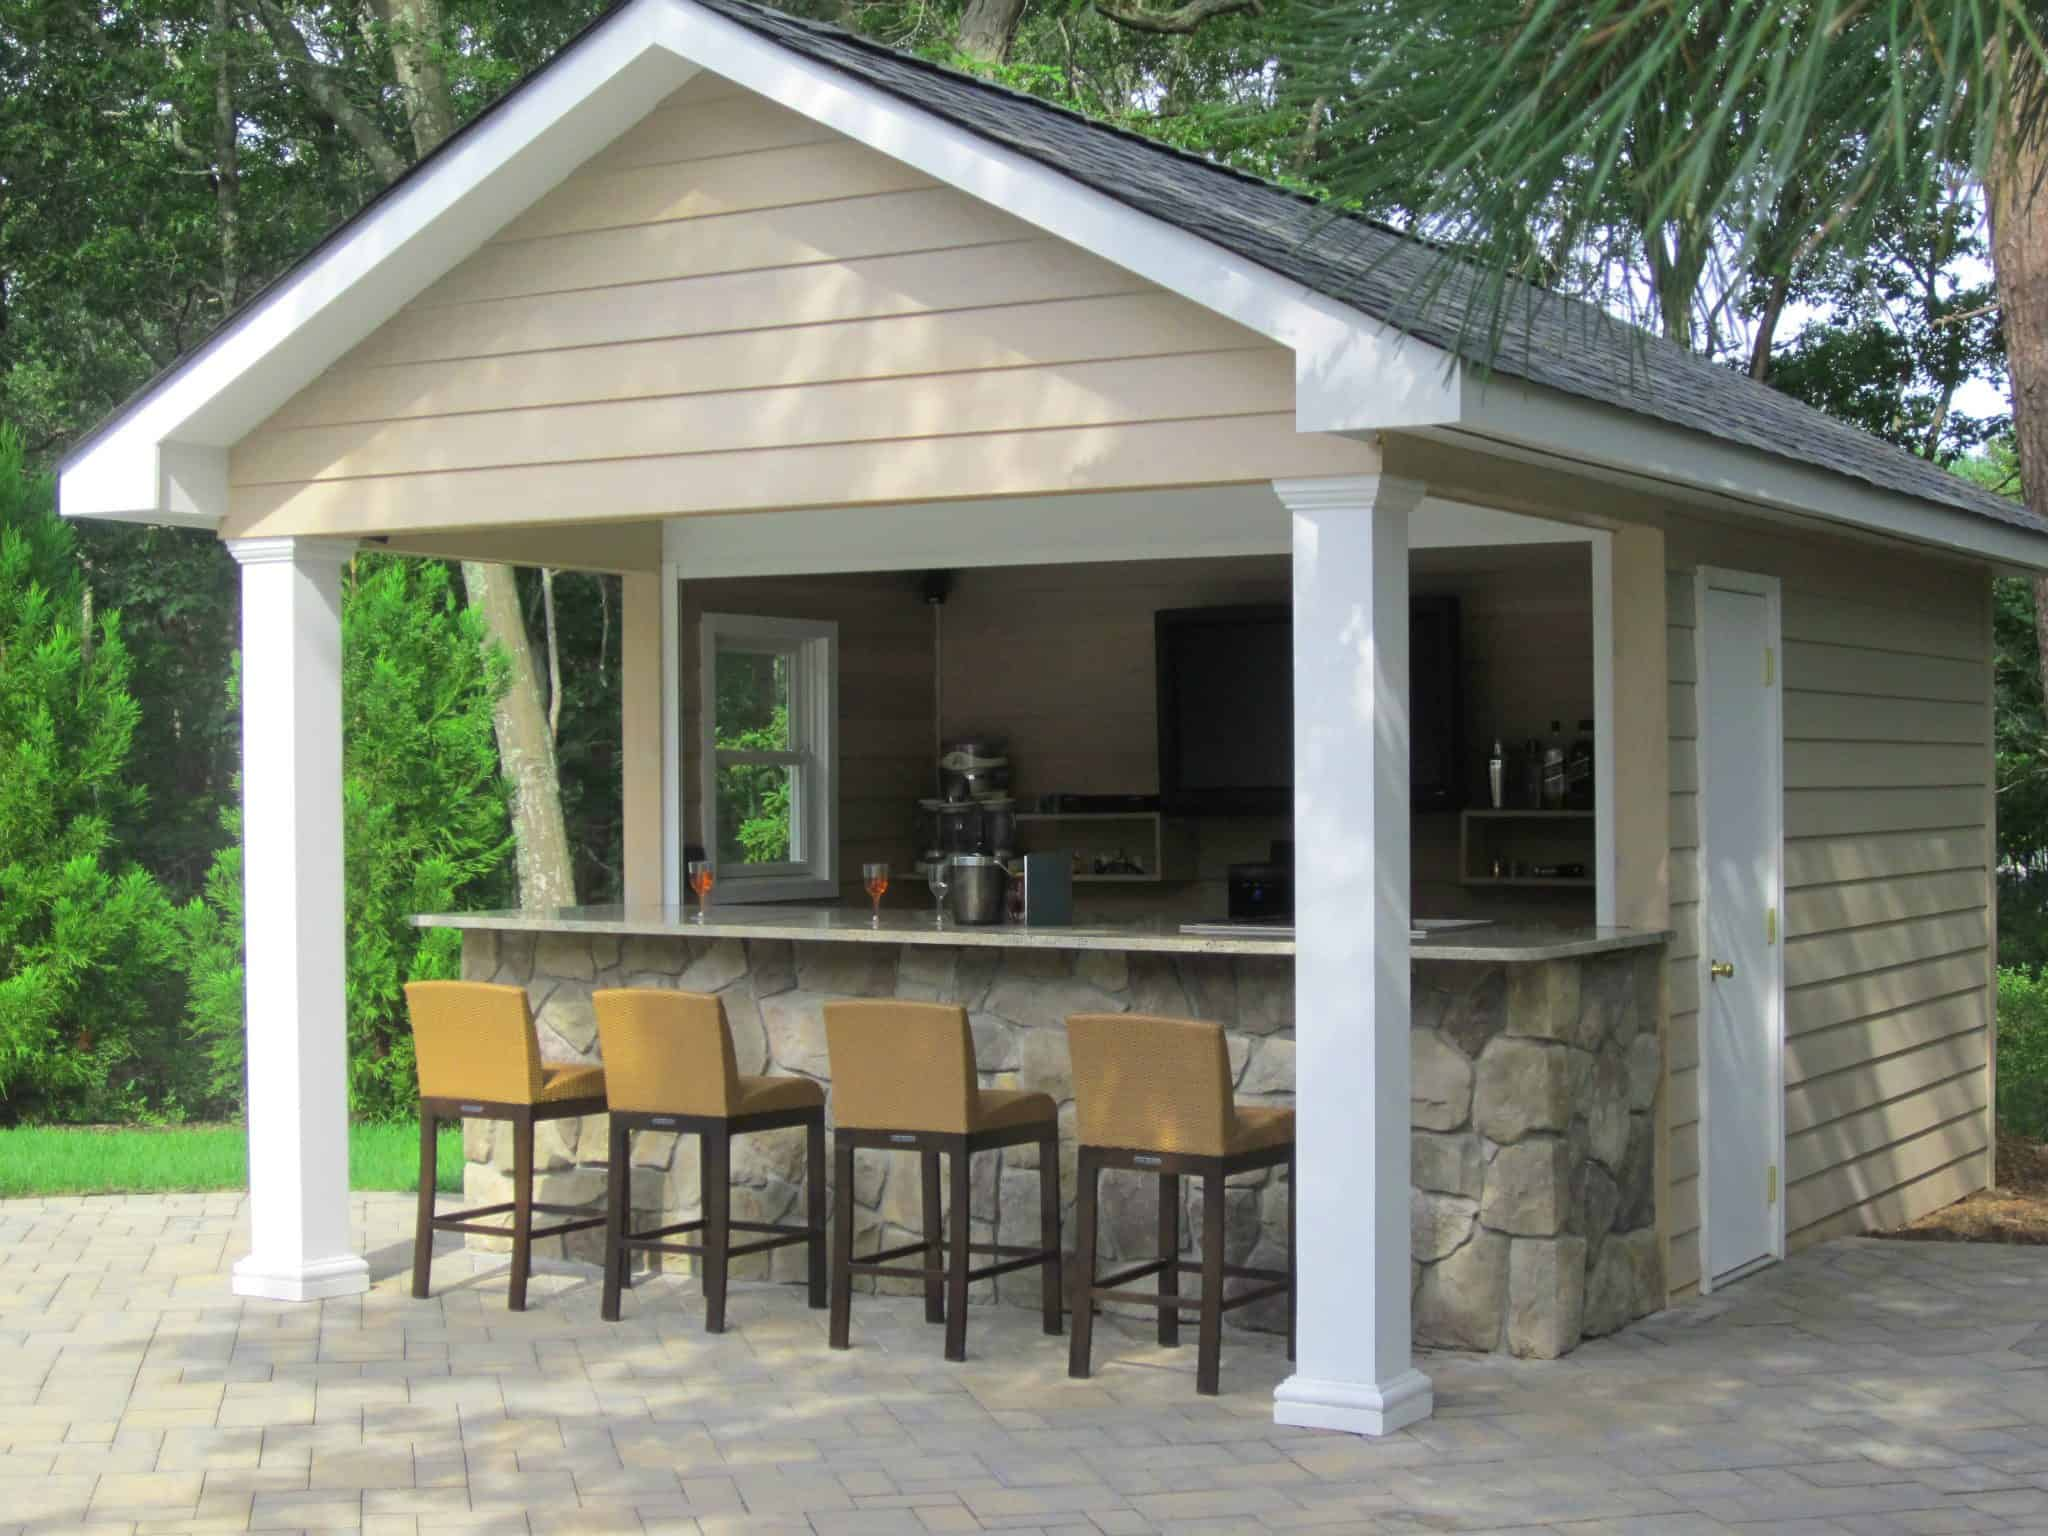 Custom Carpentry | Cabanas & Pool Houses Long Island on Cabana Designs Ideas id=15976